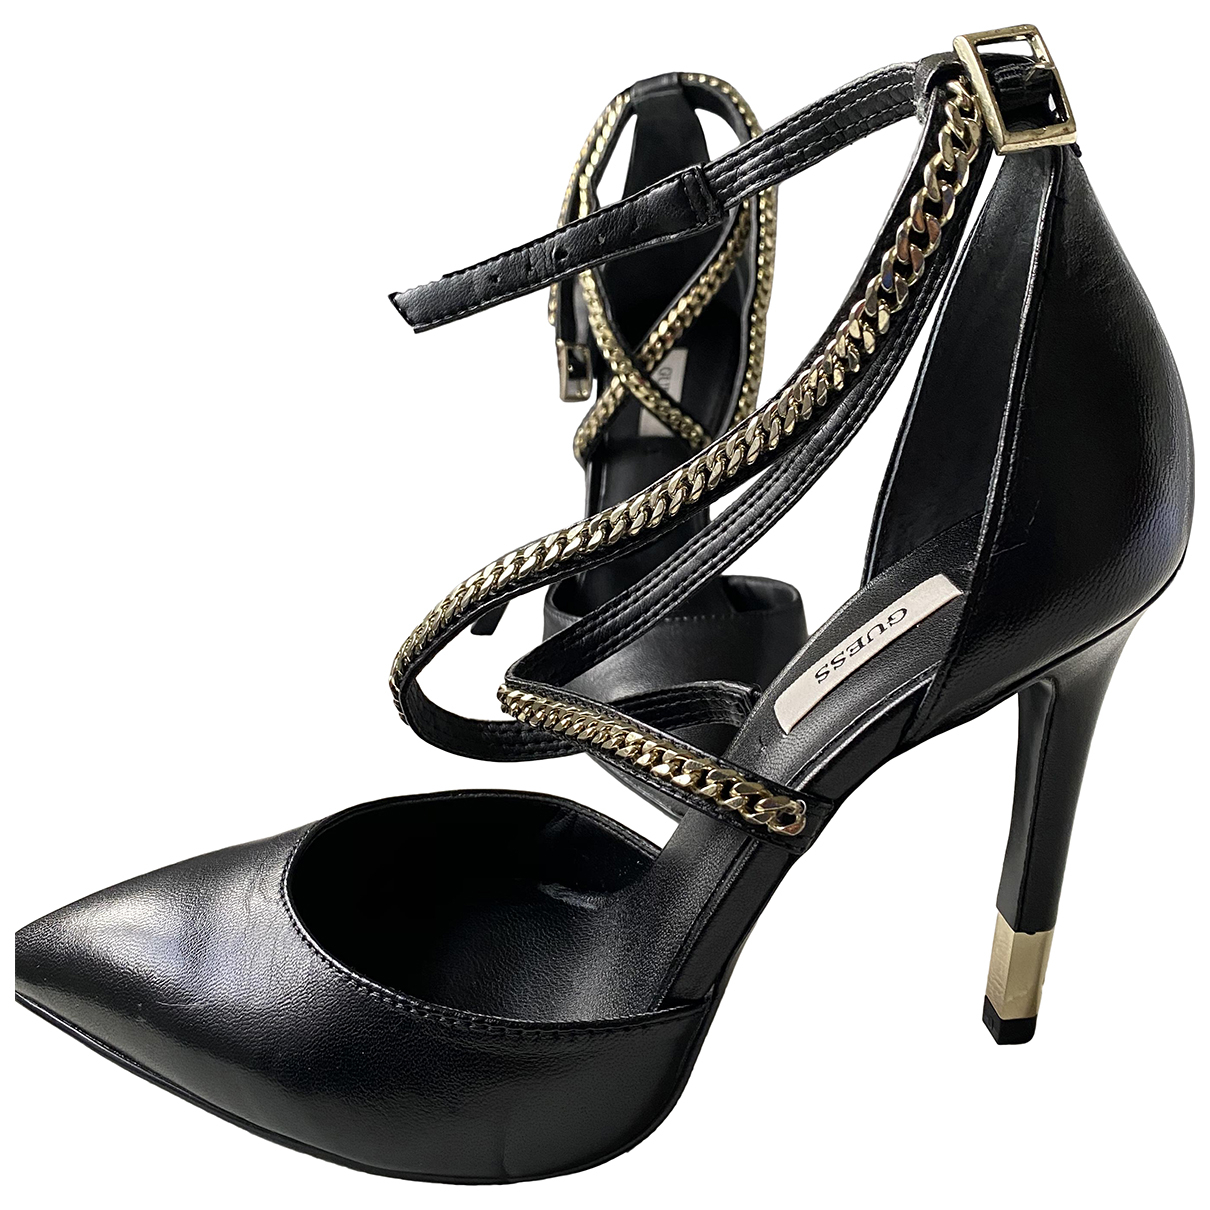 Guess N Black Leather Heels for Women 38 IT